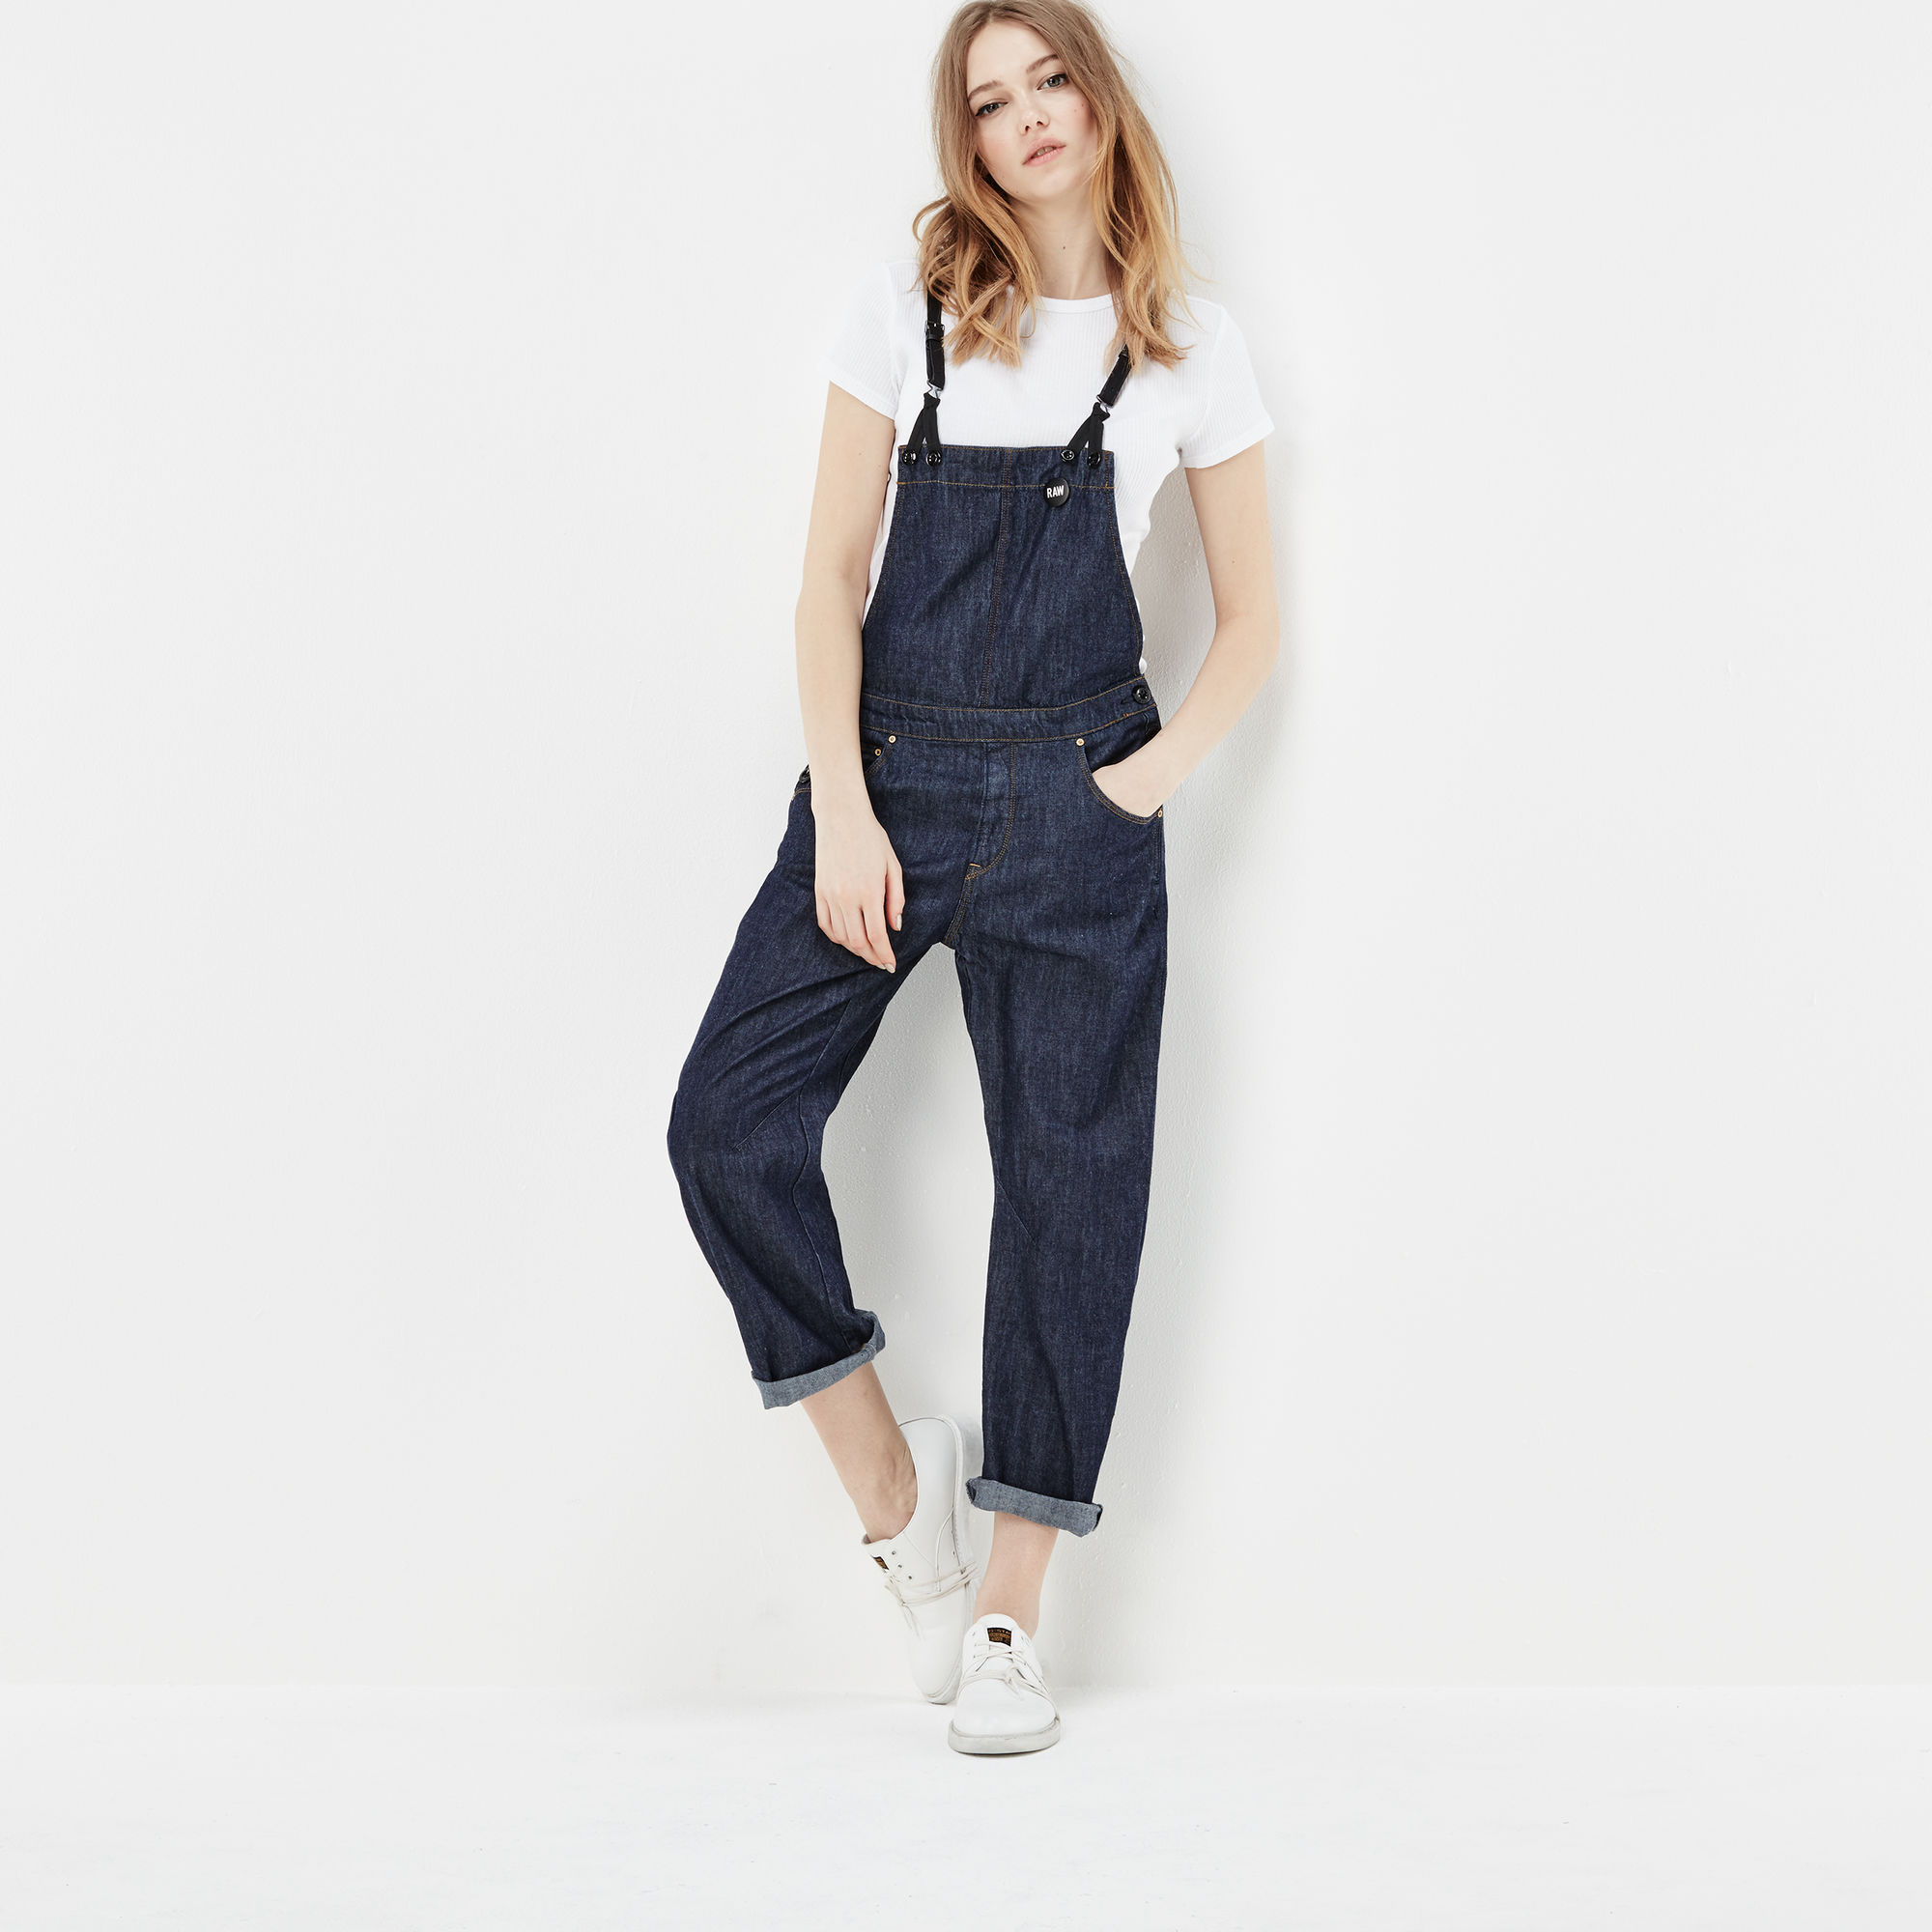 Arc Boyfriend 7/8 Length Overall